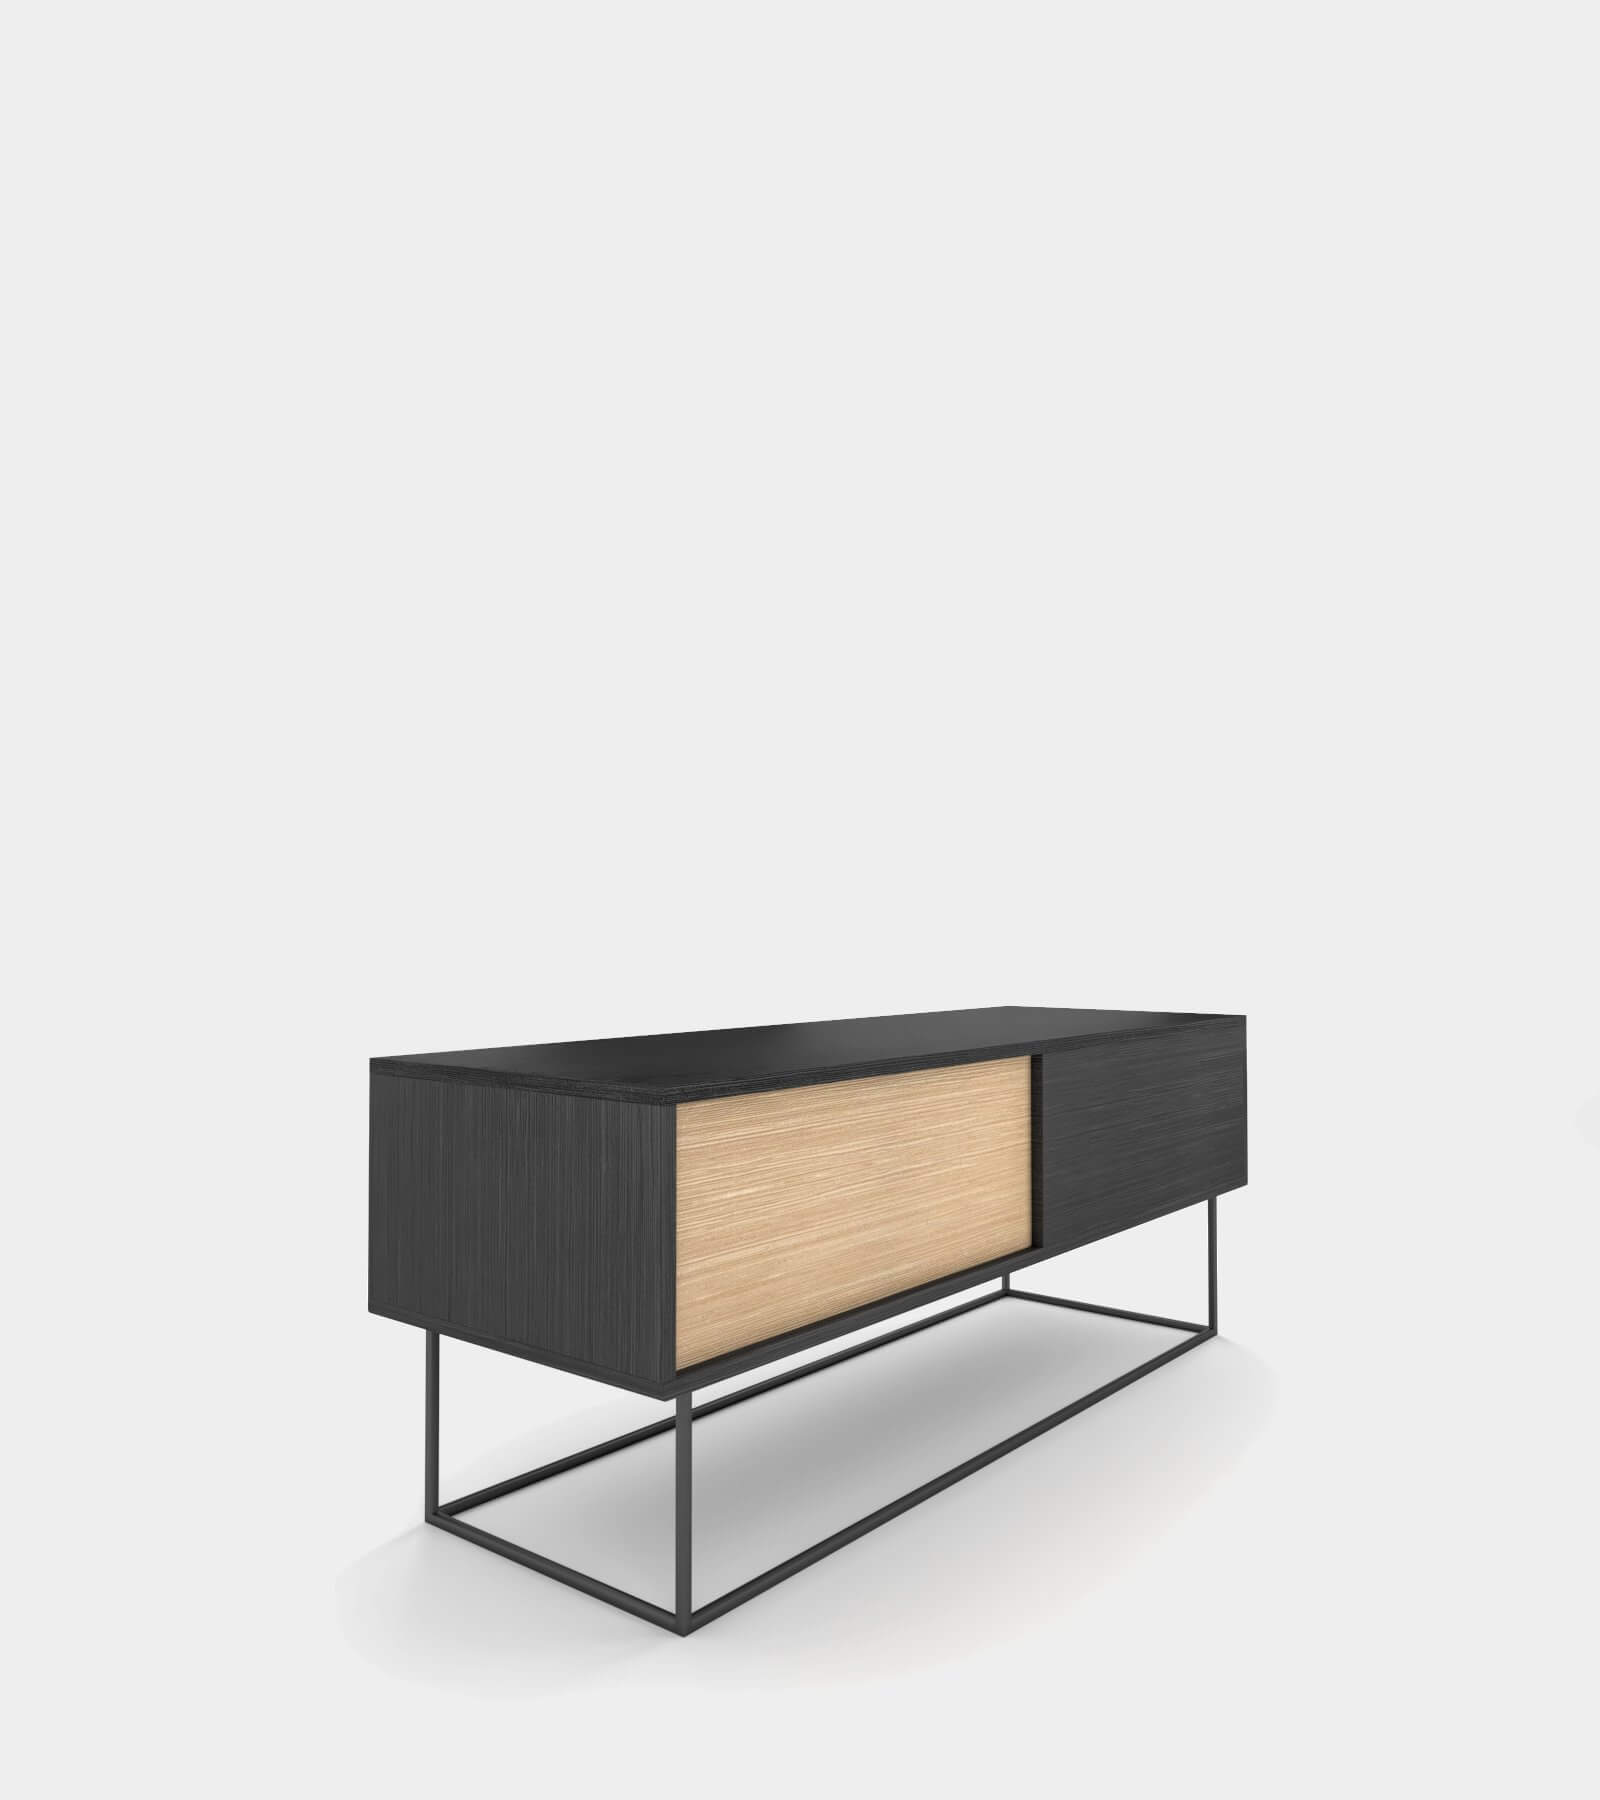 Low sideboard out of wood 2- 3D Model